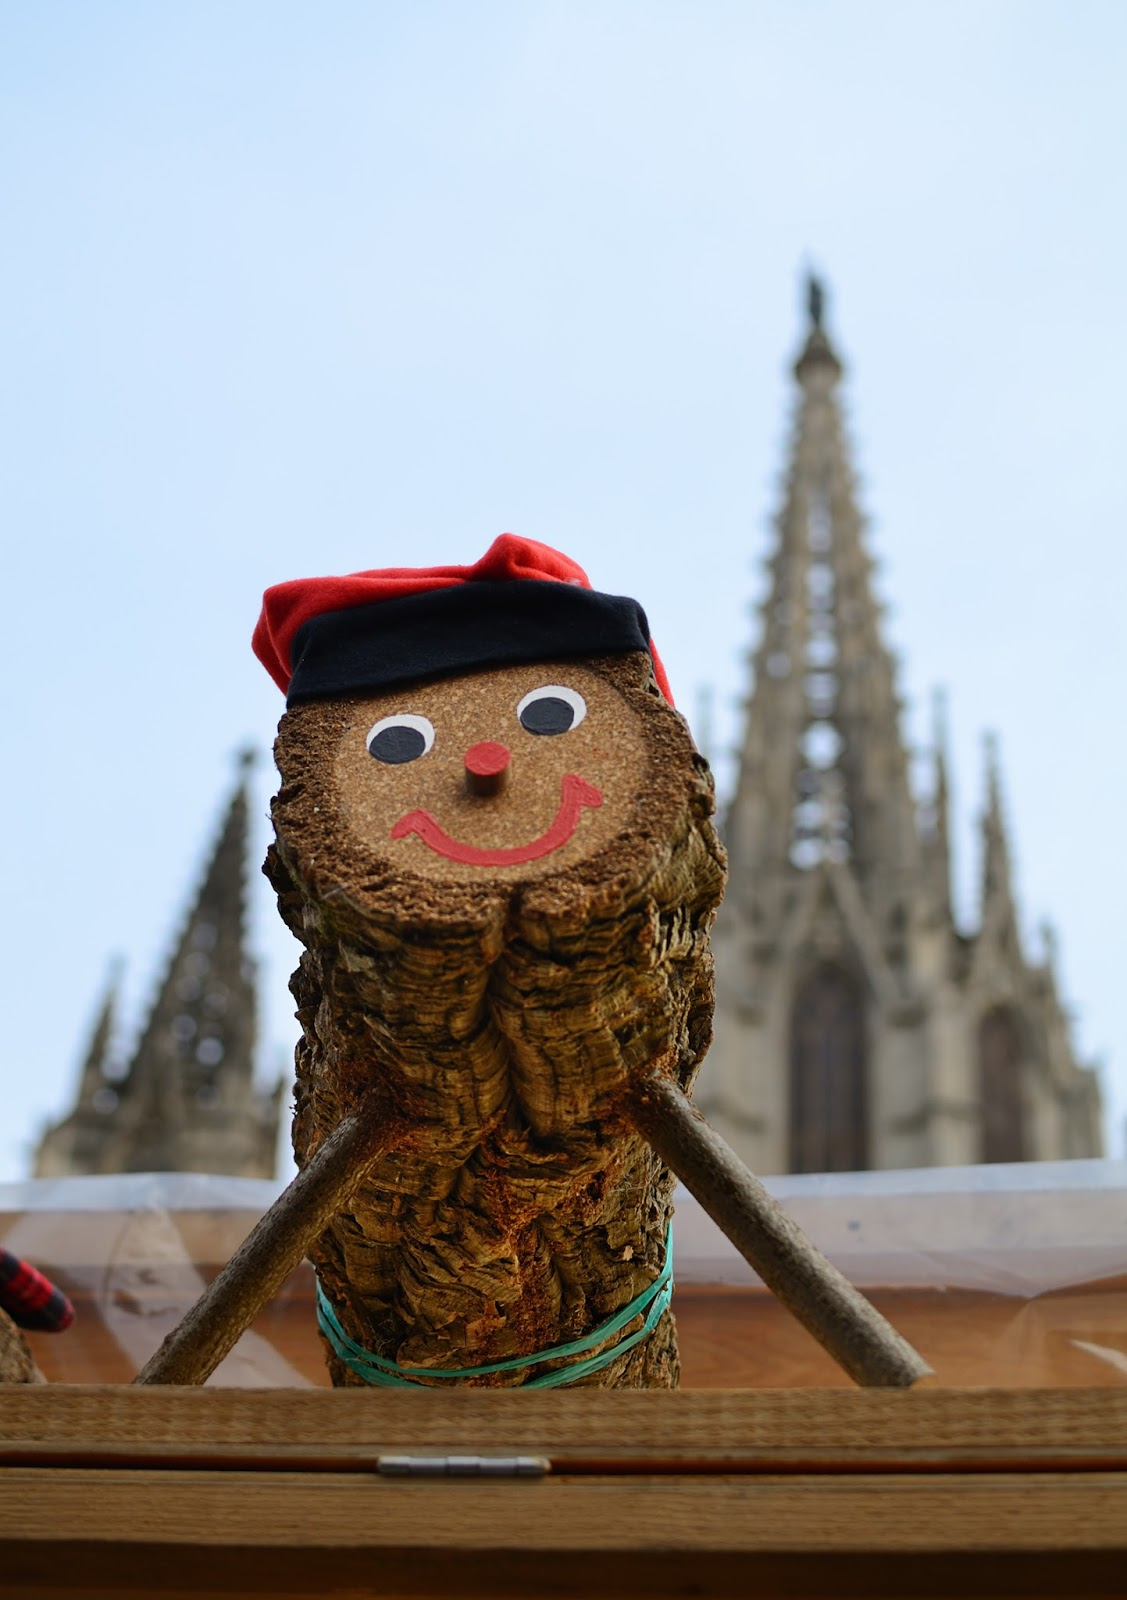 Caga Tió with Barcelona Cathedral in the background